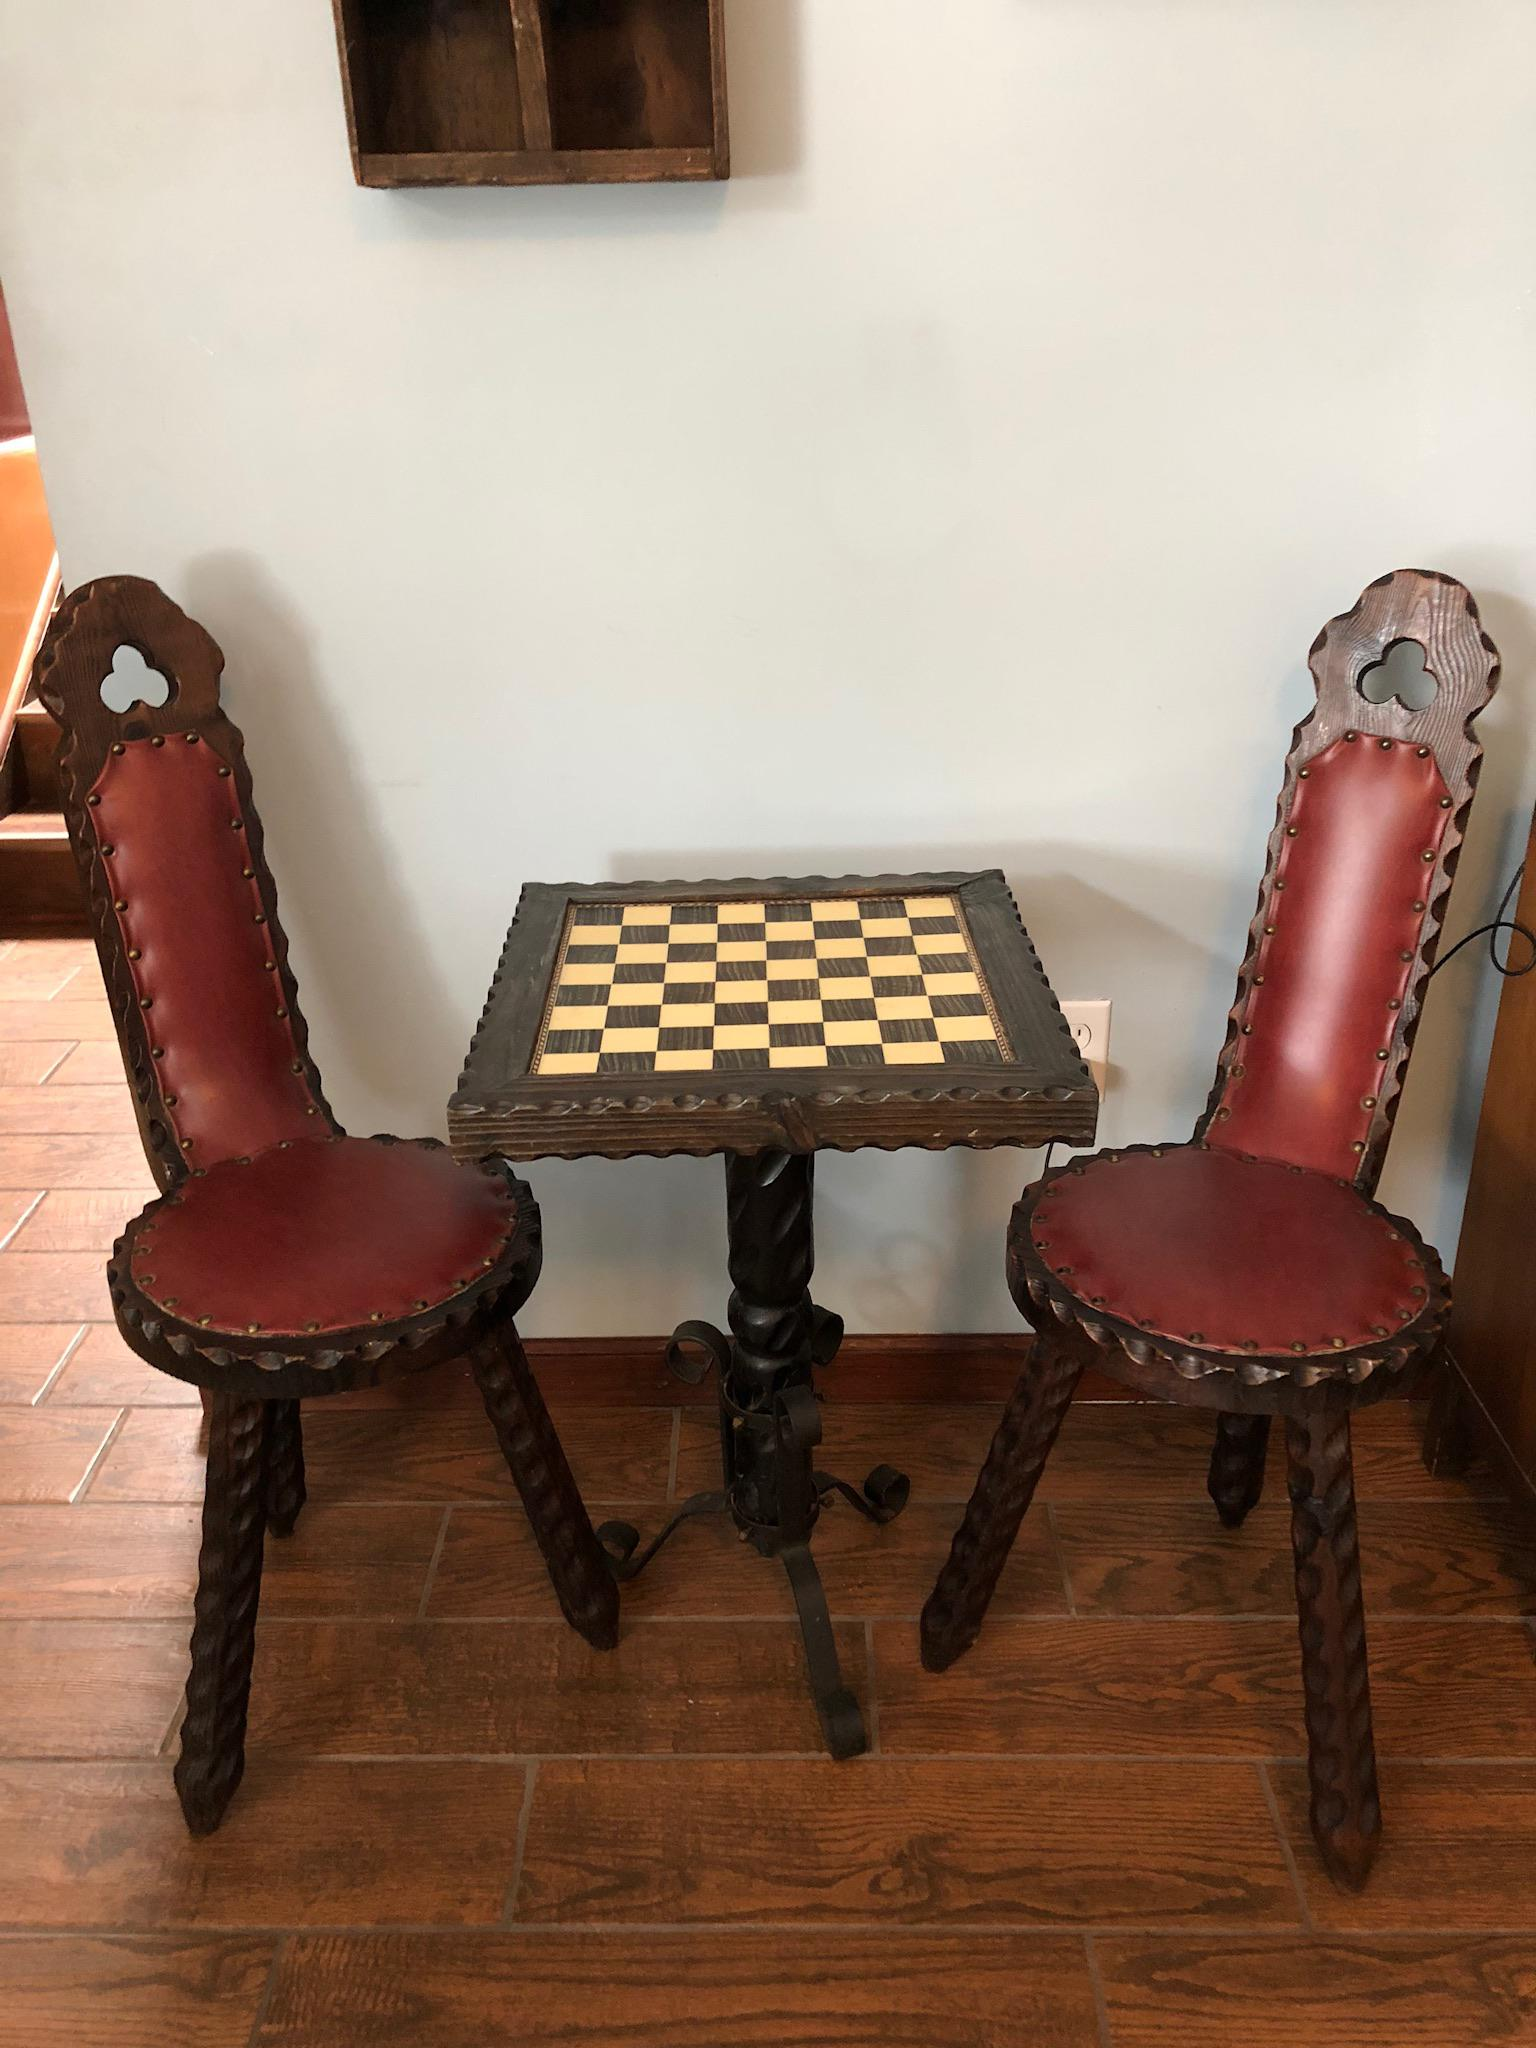 Vintage Spanish Carved Chess Table \u0026 Chairs - Set of 3 - Image 10 of 10  sc 1 st  Chairish & Vintage Spanish Carved Chess Table \u0026 Chairs - Set of 3 | Chairish